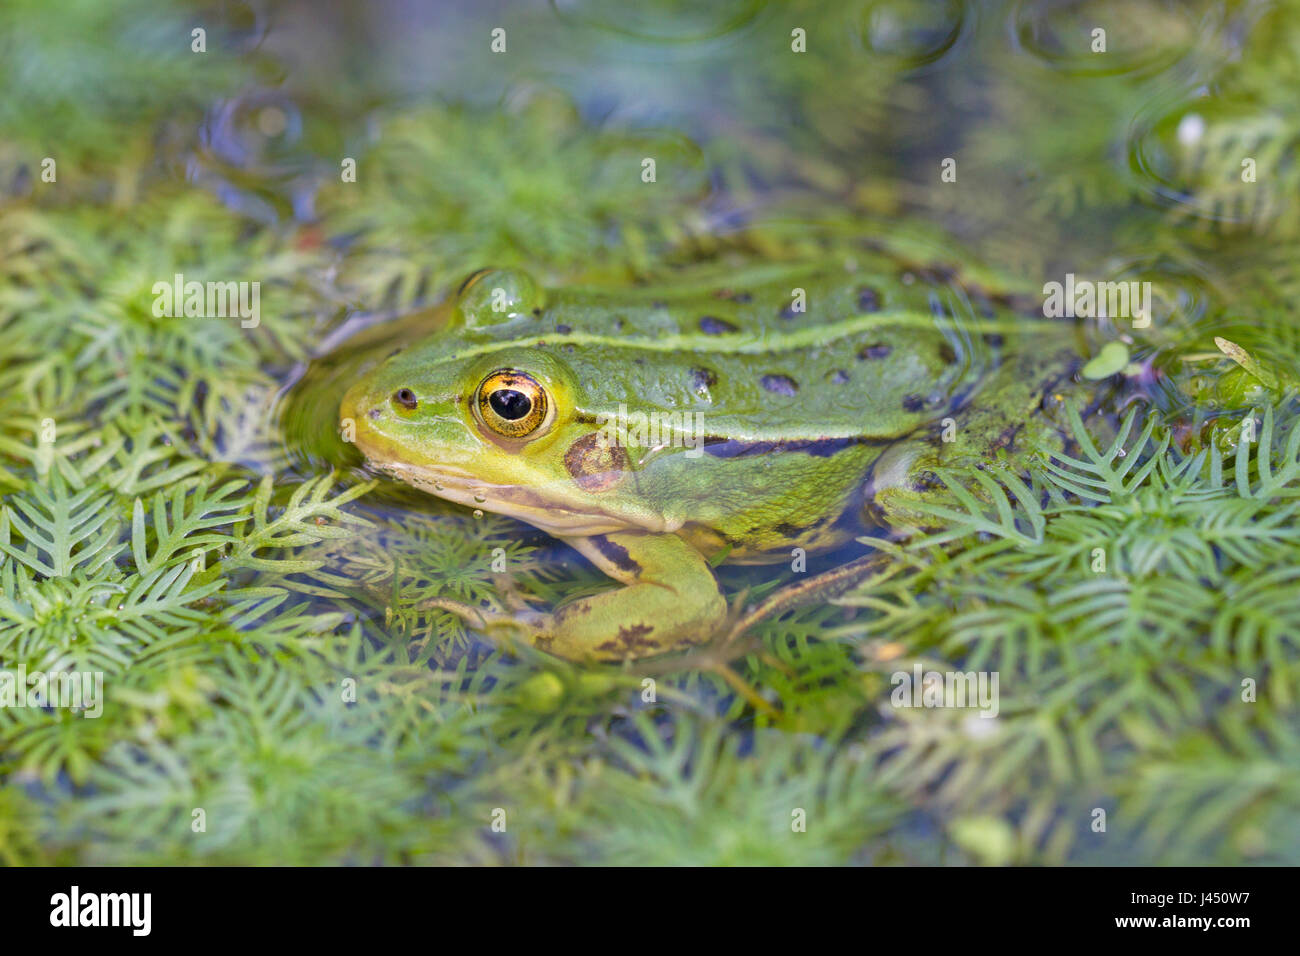 Pool frog in the water Stock Photo